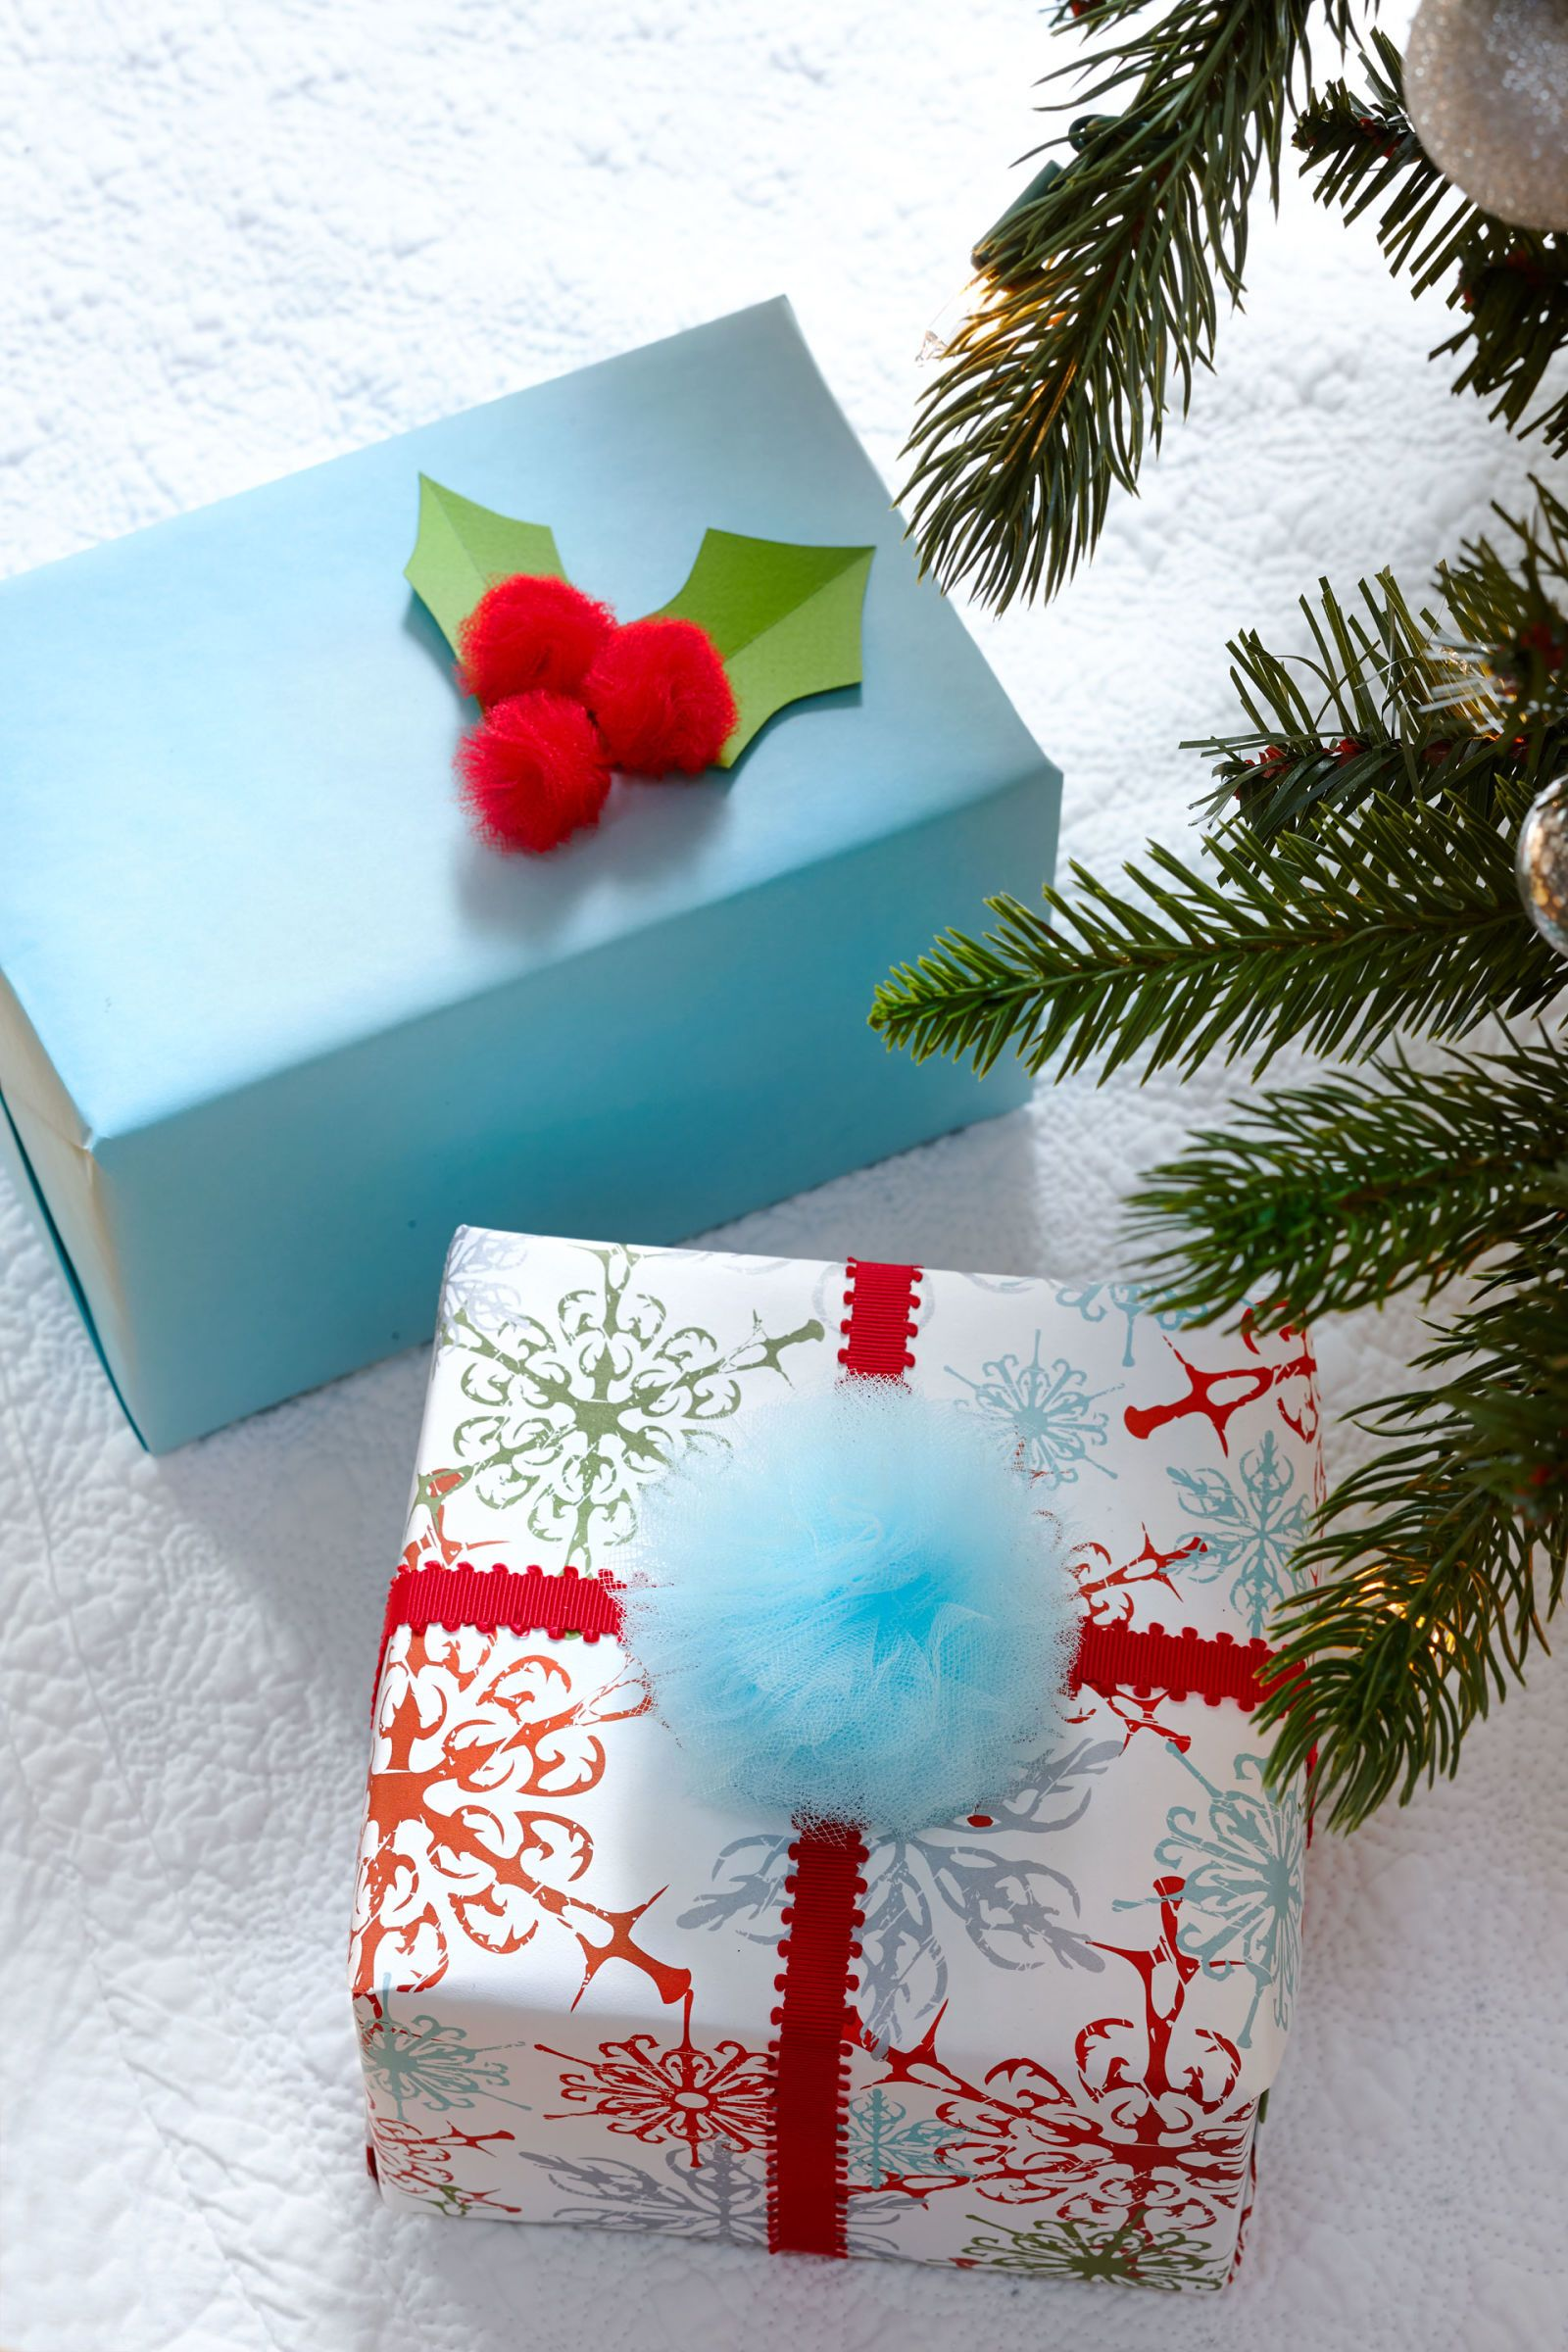 40 Unique Christmas Gift Wrapping Ideas - DIY Holiday Gift Wrap